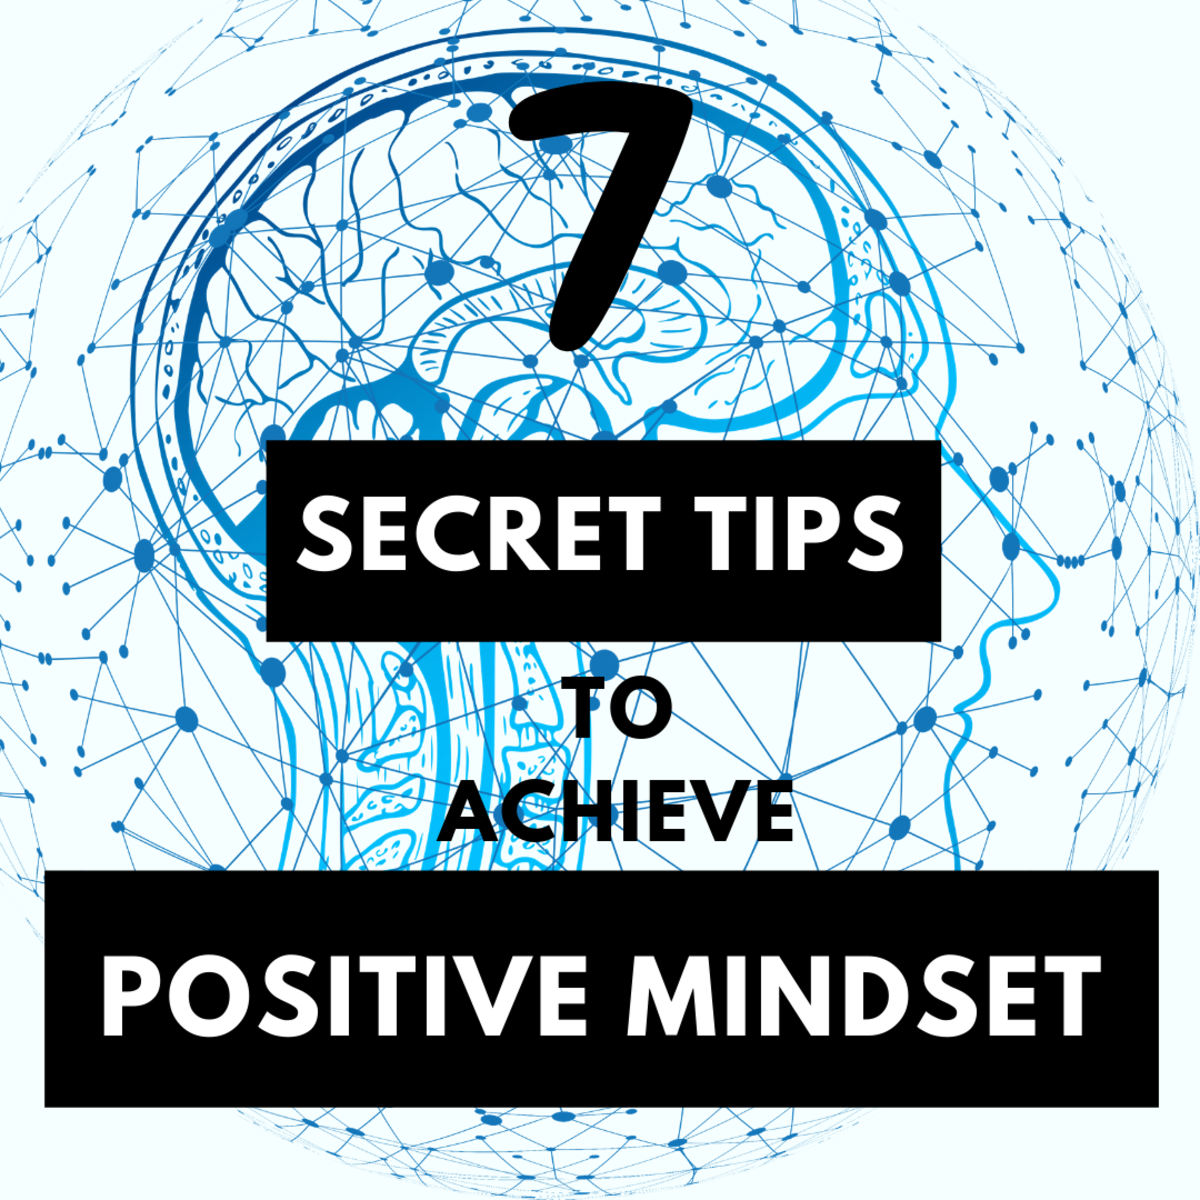 Learn to achieve a positive mindset and improve the quality of your life by following 7 secret tips.